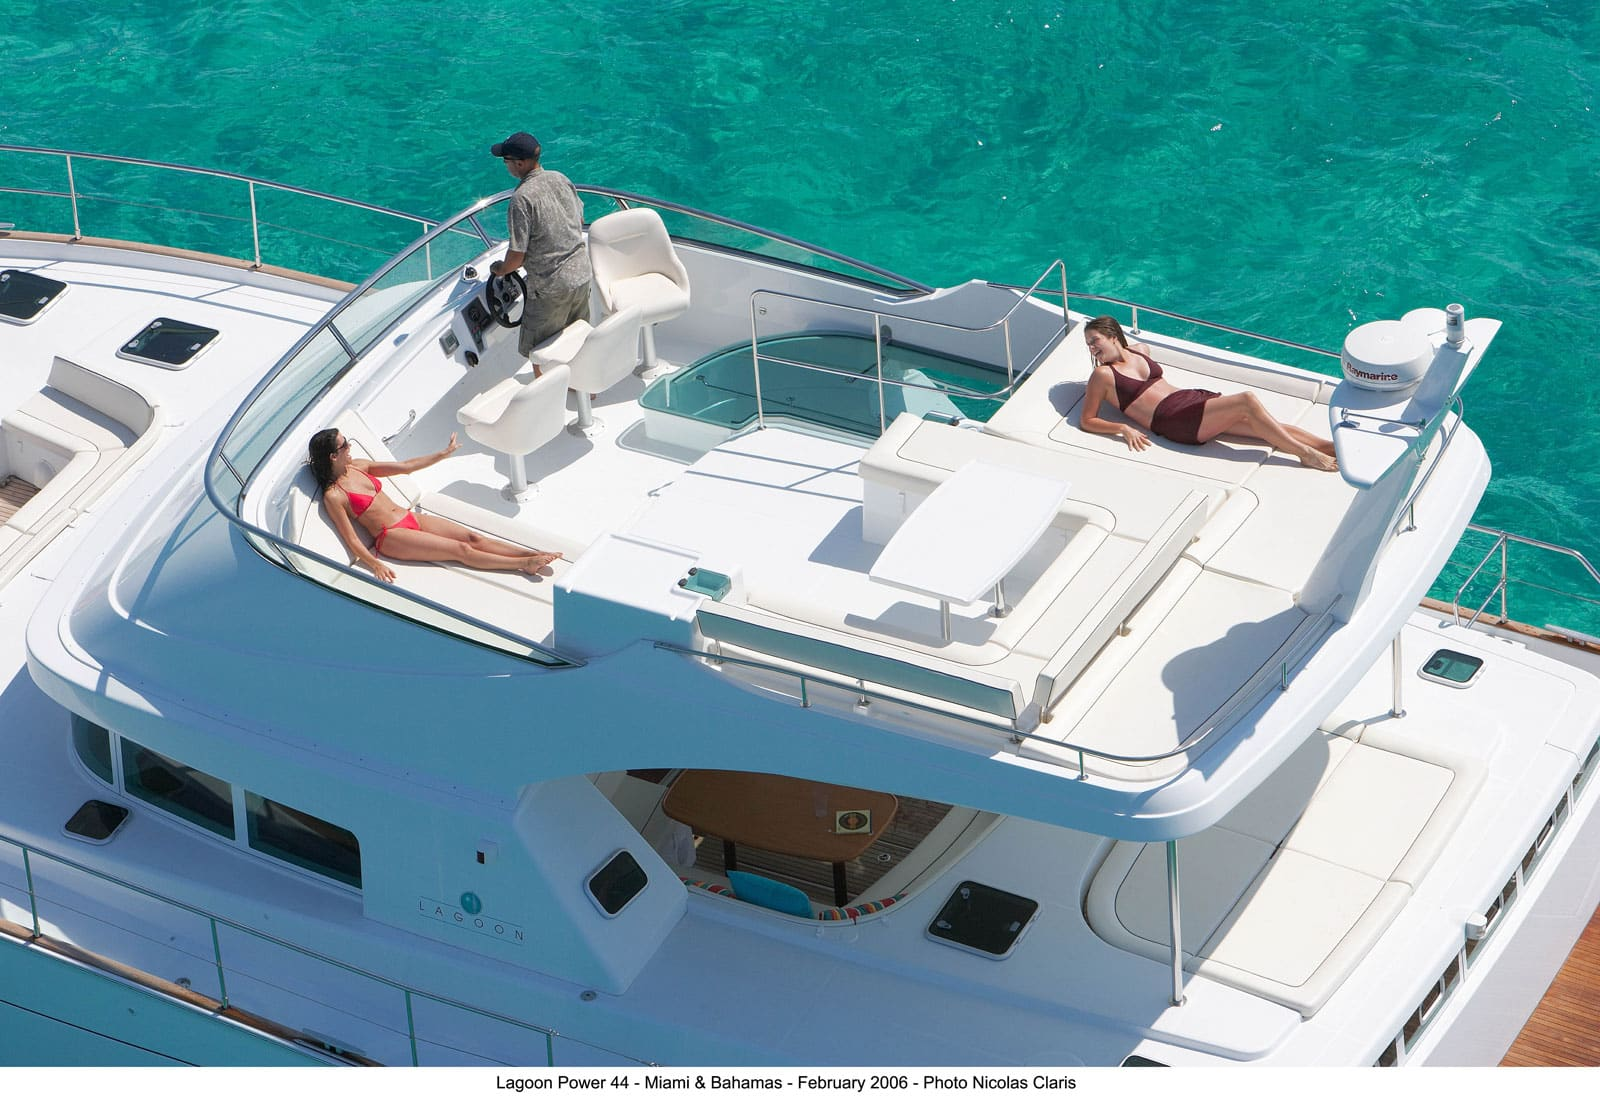 lagoon power 44-yacht-charter-croatia-sailing-holidays-croatia-booking-yacht-charter-croatia-catamarans-sailboats-motorboats-gulets-luxury-yachts-boat-rental-croatia10